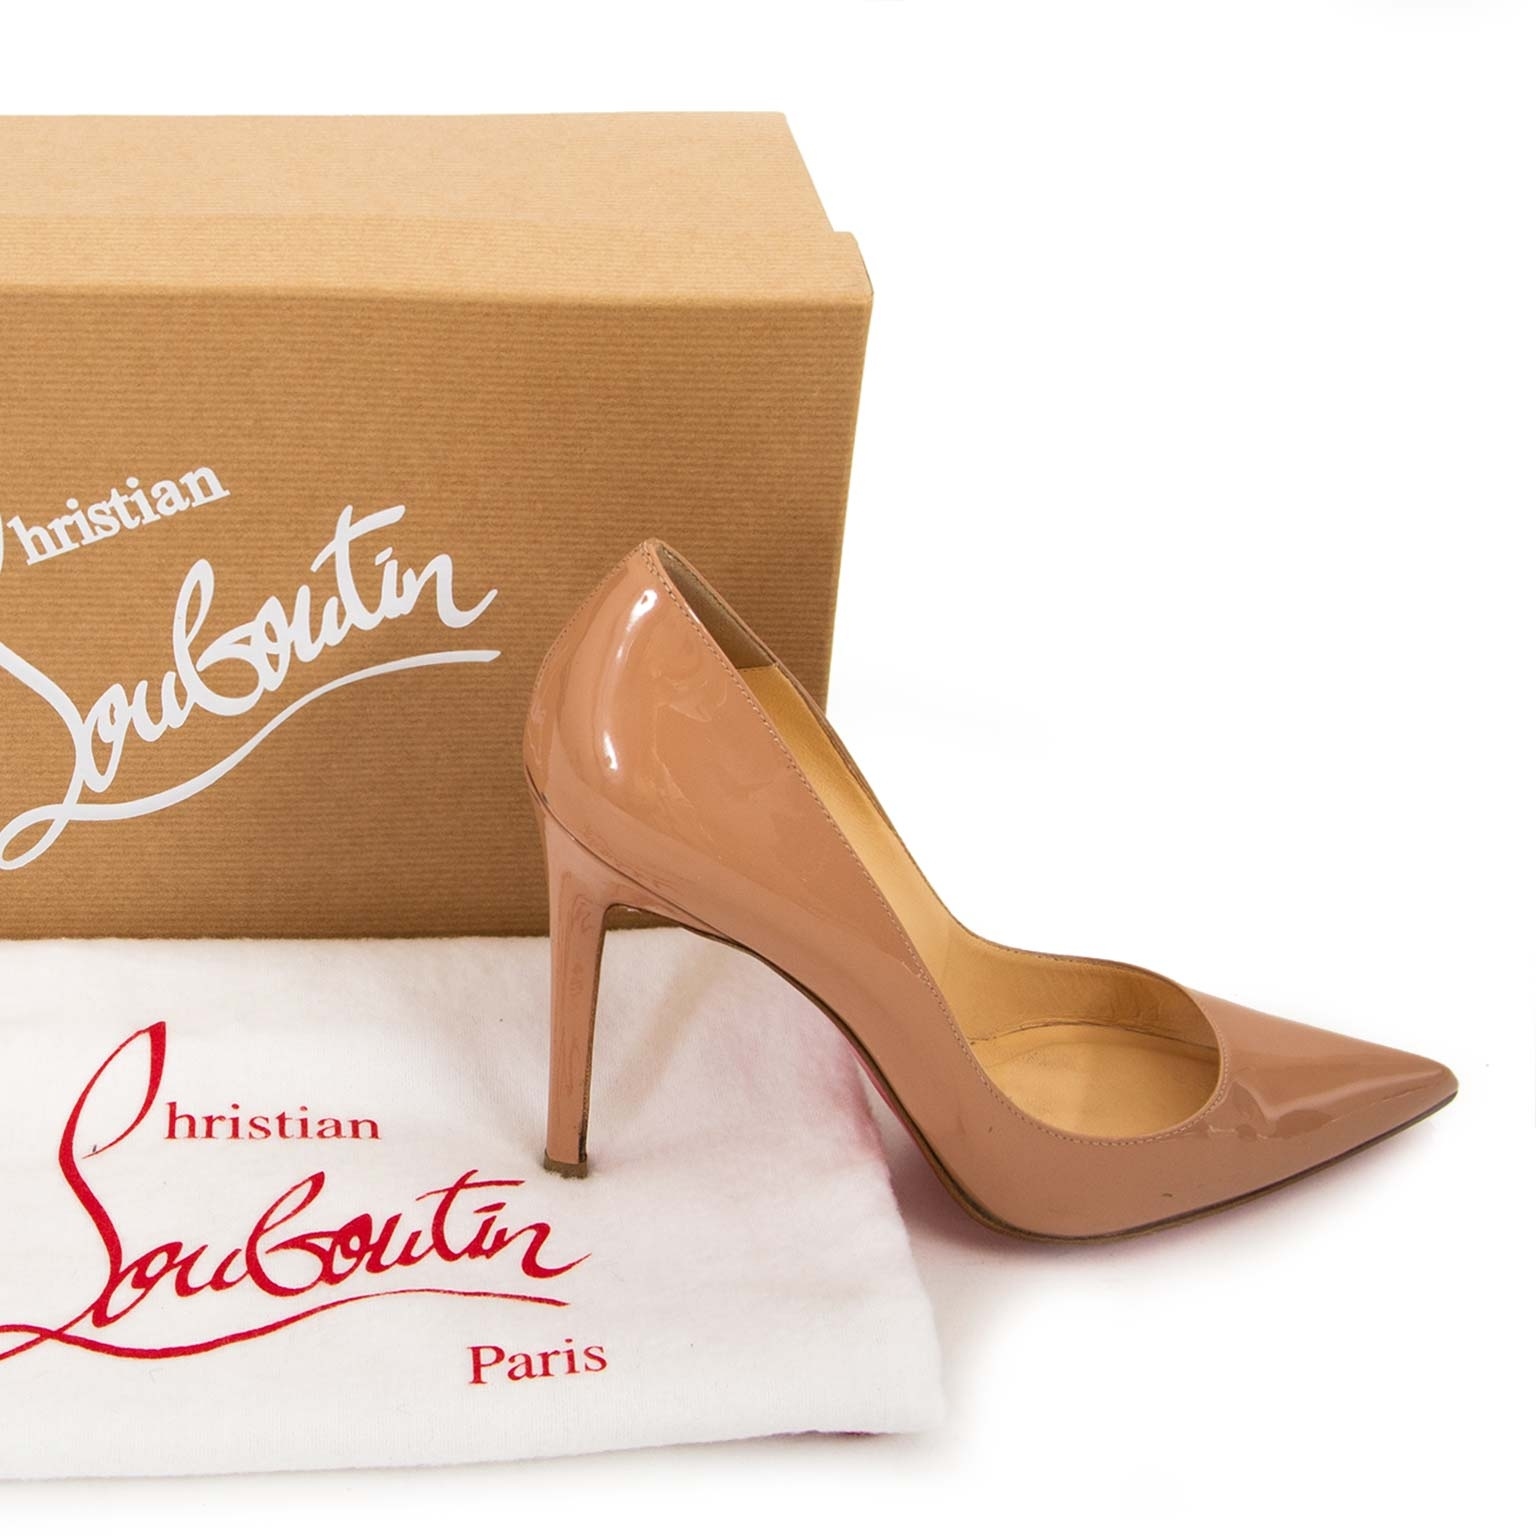 87ed12eb9 ... christian louboutin pigalle nude leather pumps now for sale at labellov  vintage fashion webshop belgium